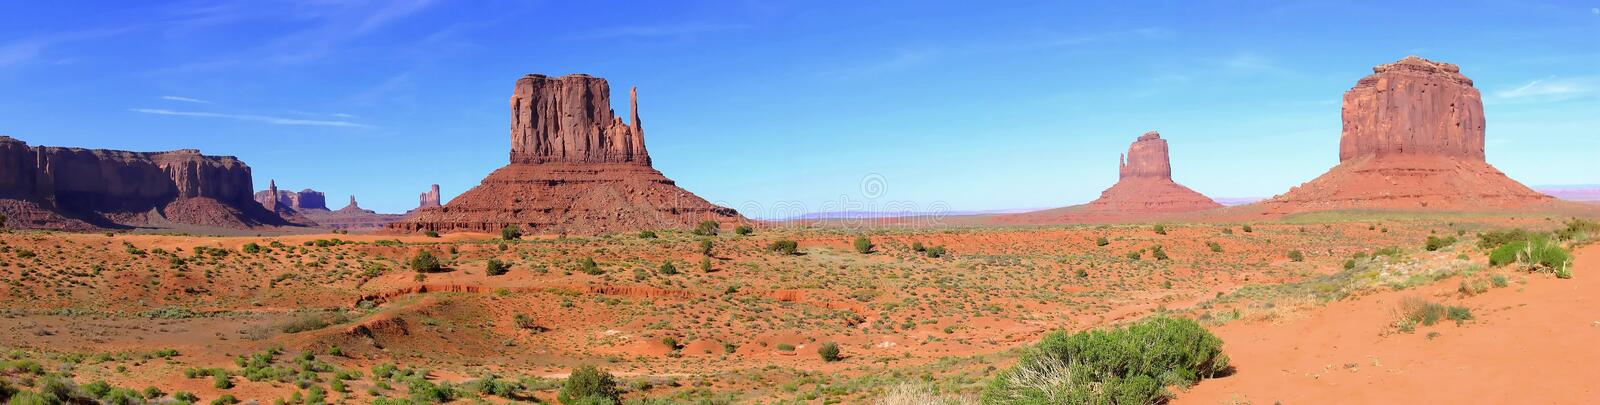 Download Panorama Of Monument Valley Stock Image - Image: 12373781